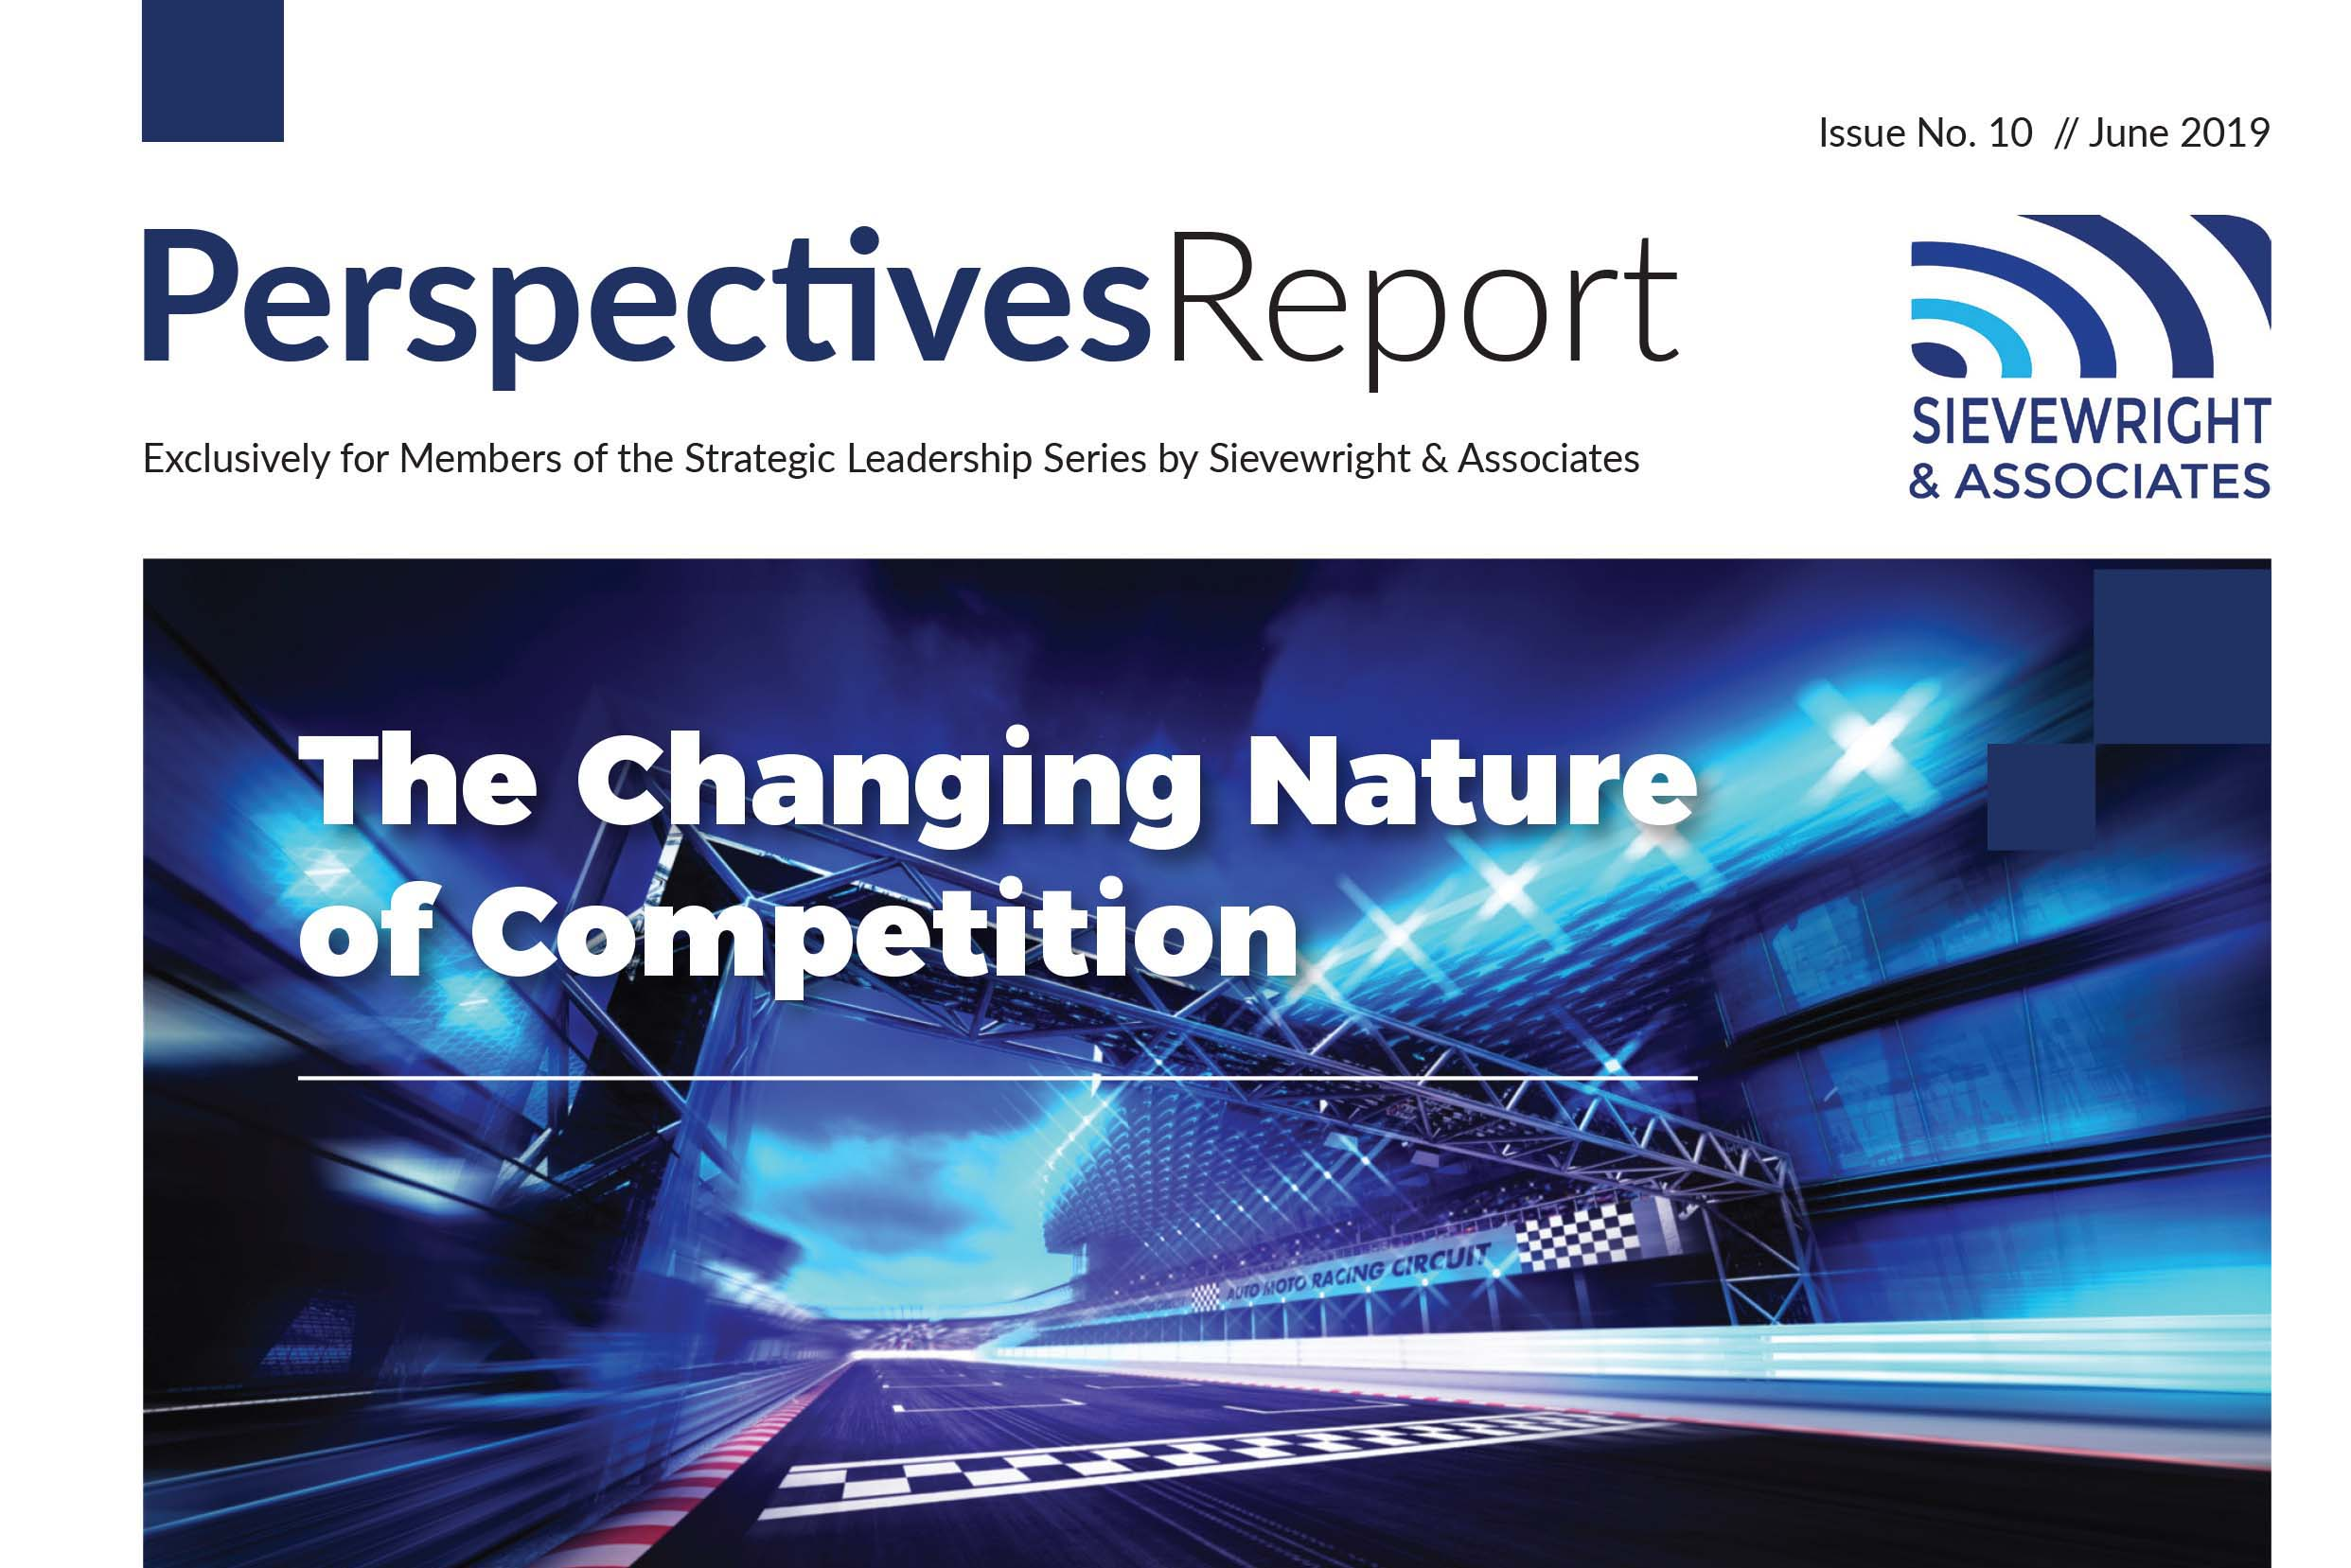 Perspectives Report Cover Image June 2019